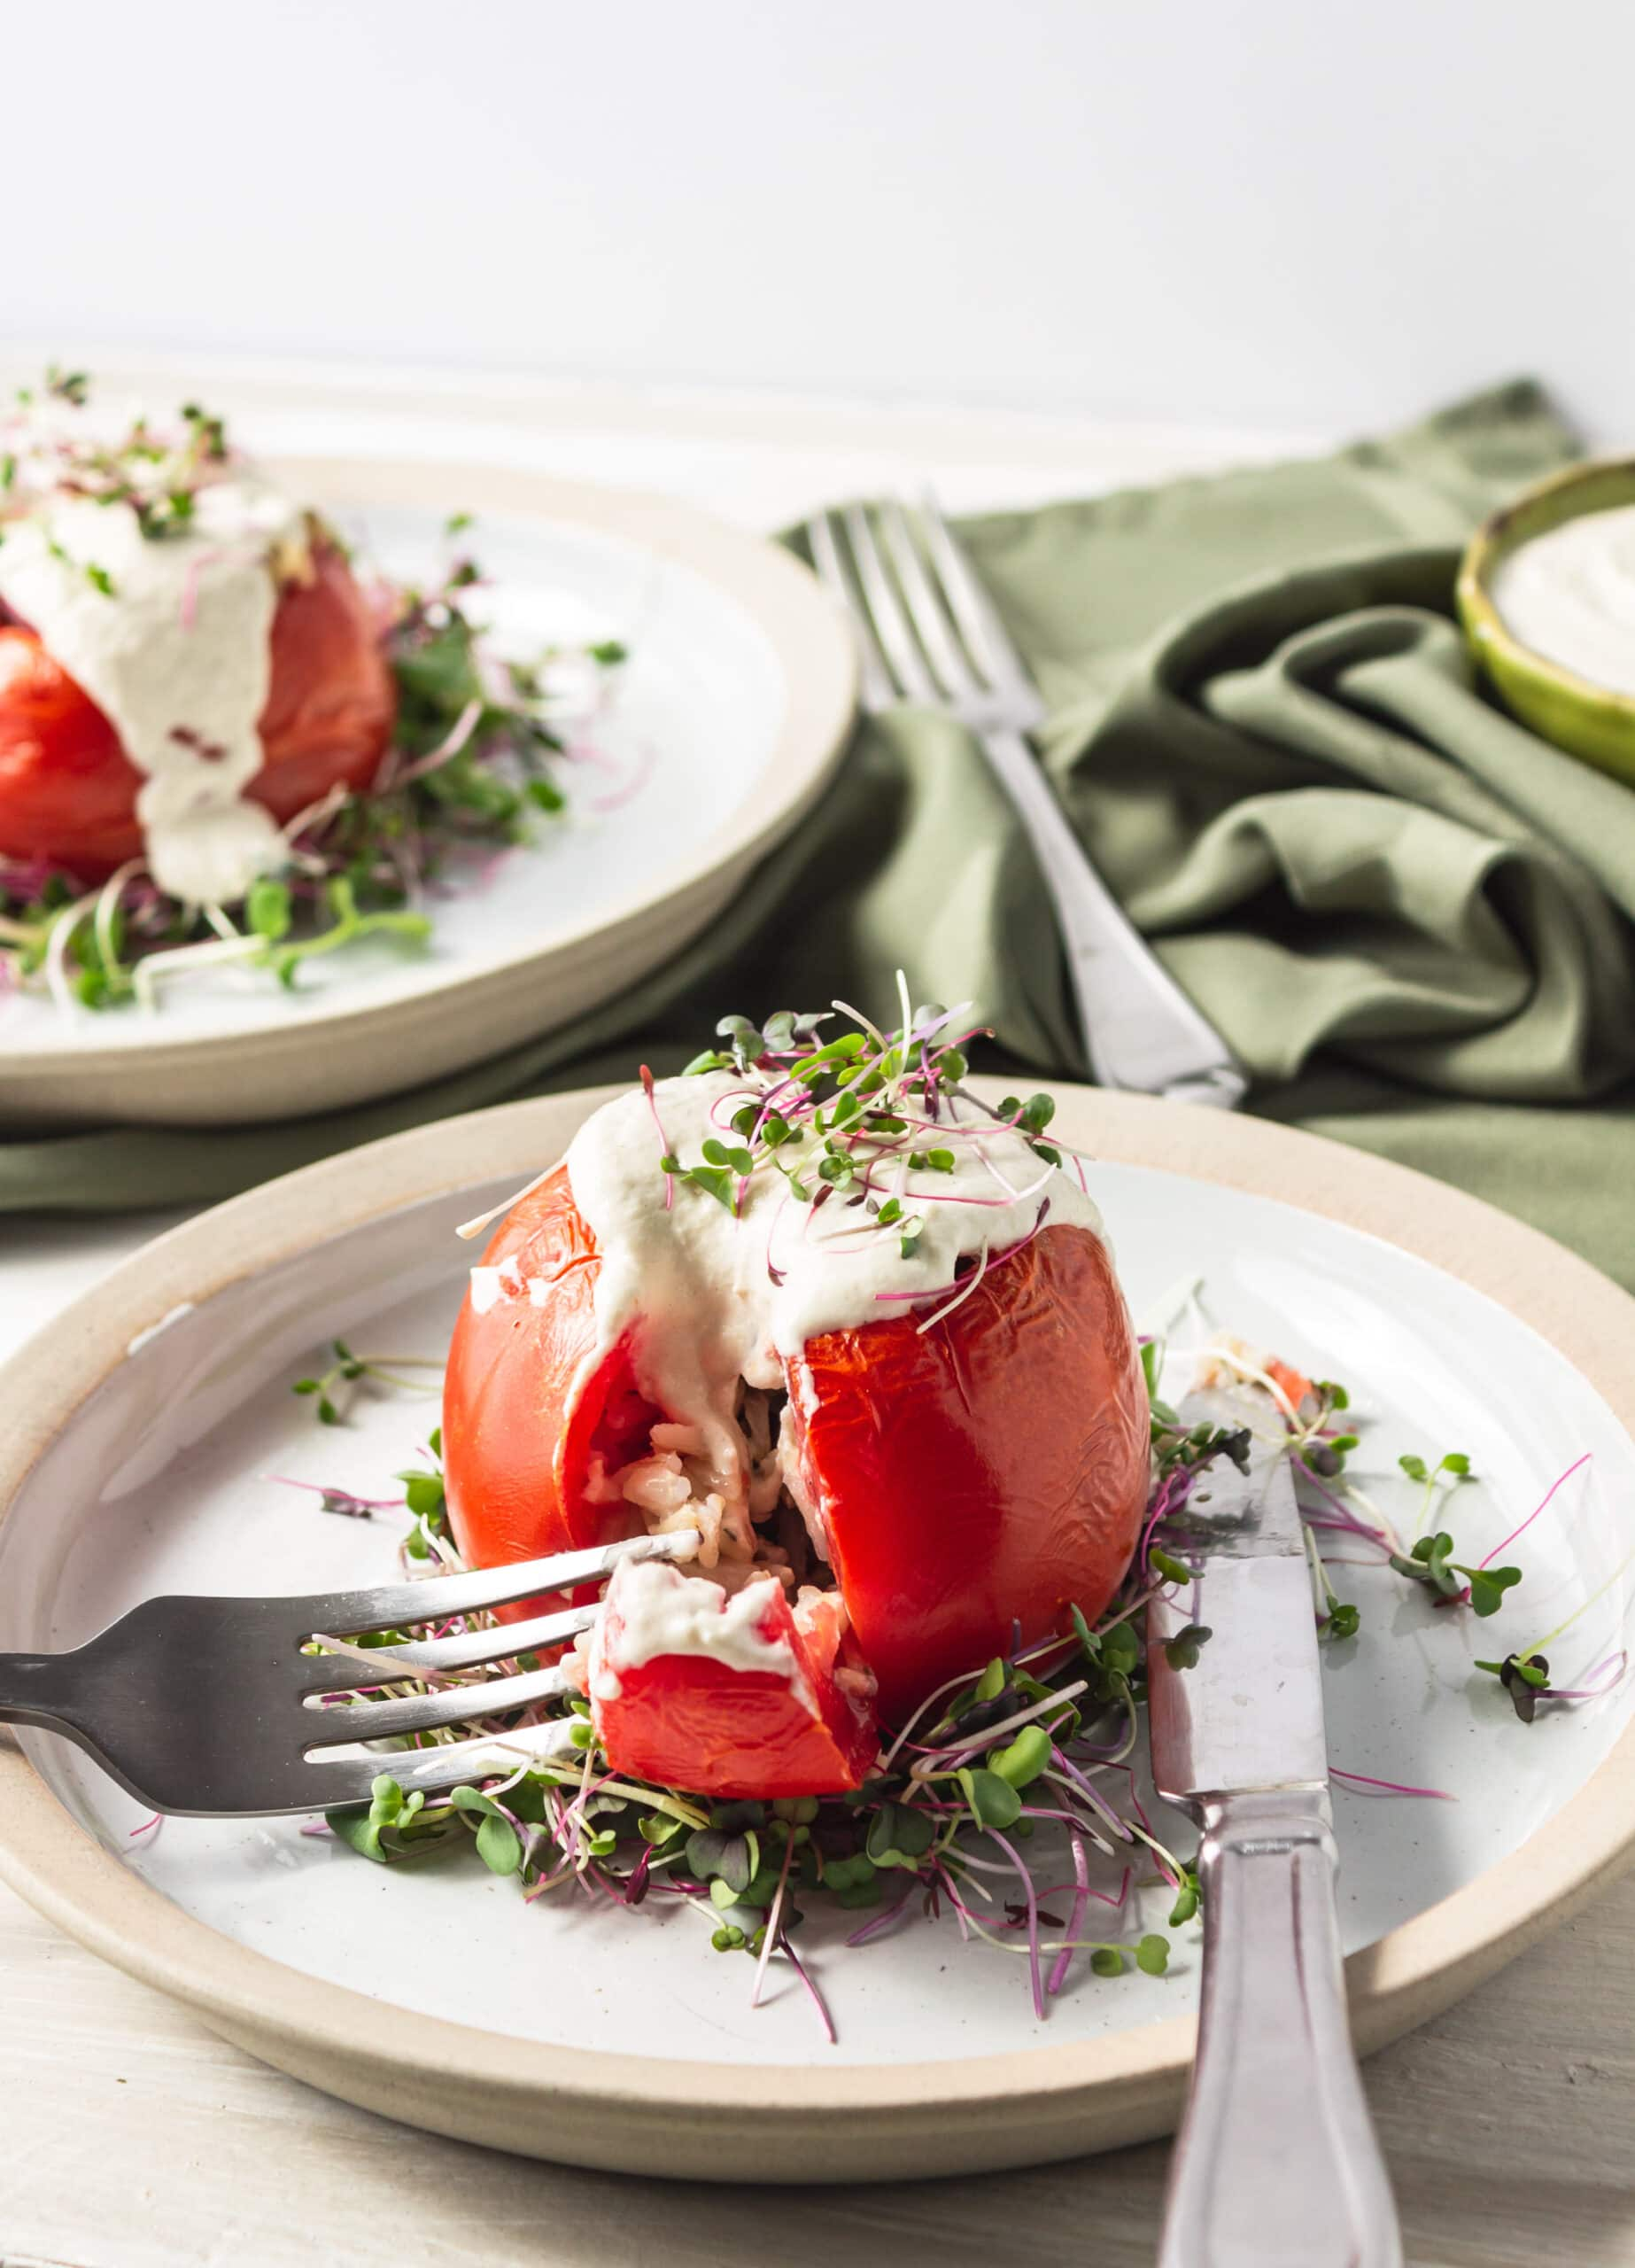 vegan stuffed tomato recipe